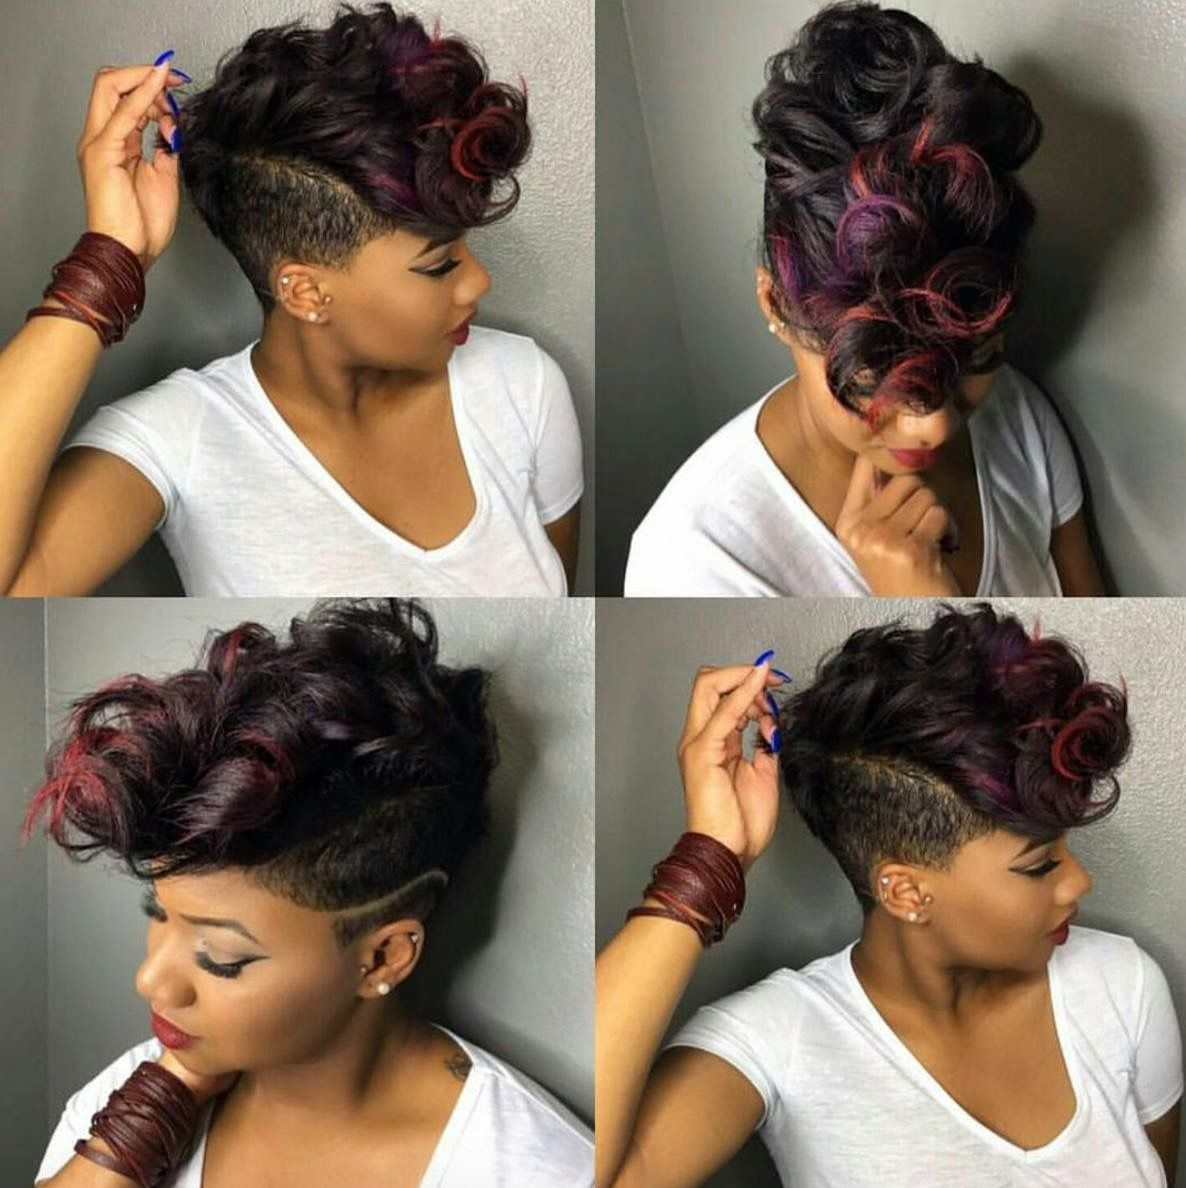 Pin by kayla on smash pinterest short hair hair style and shorts